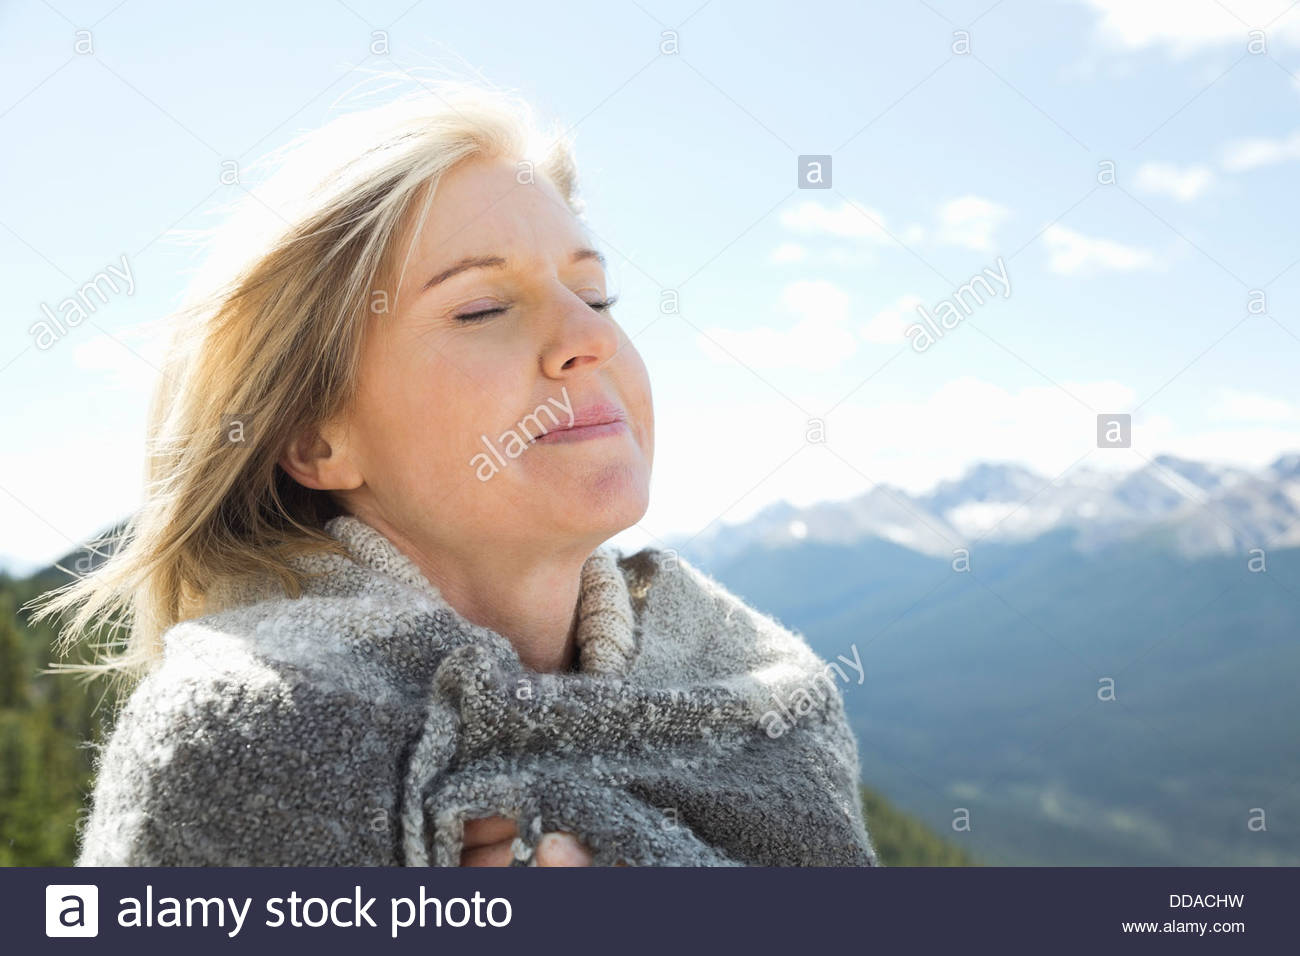 Portrait of woman outdoors with eyes closed - Stock Image